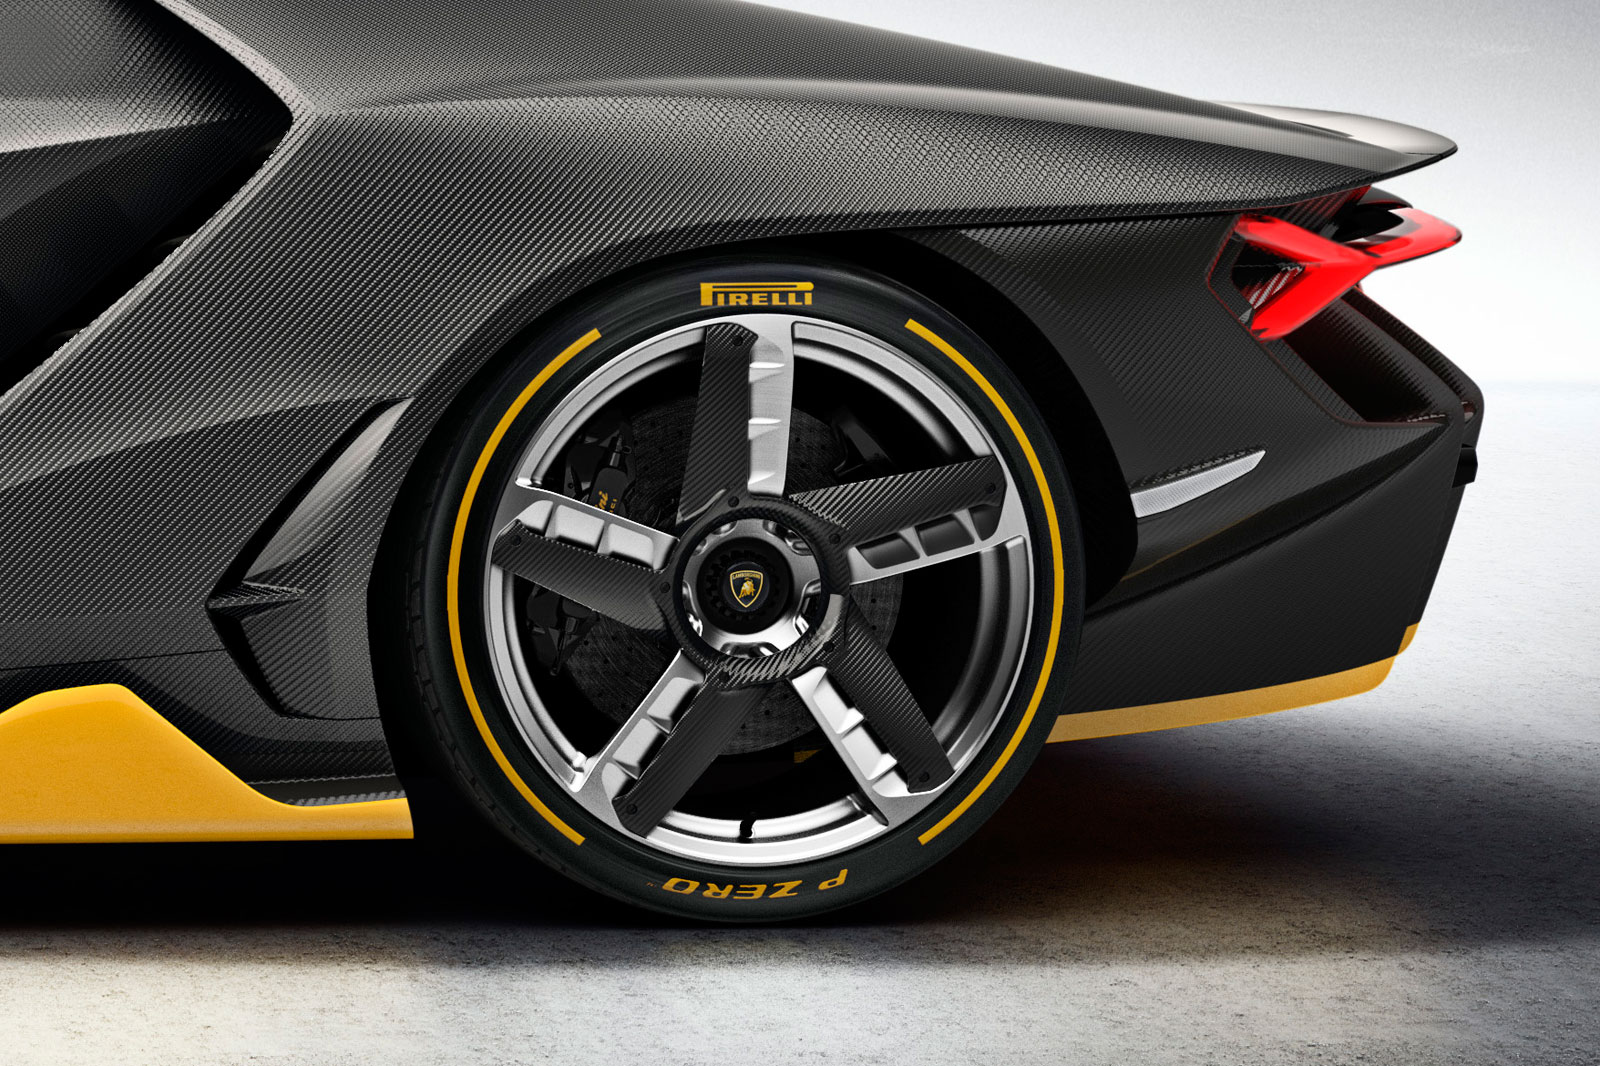 Lamborghini Centenario rear wheel